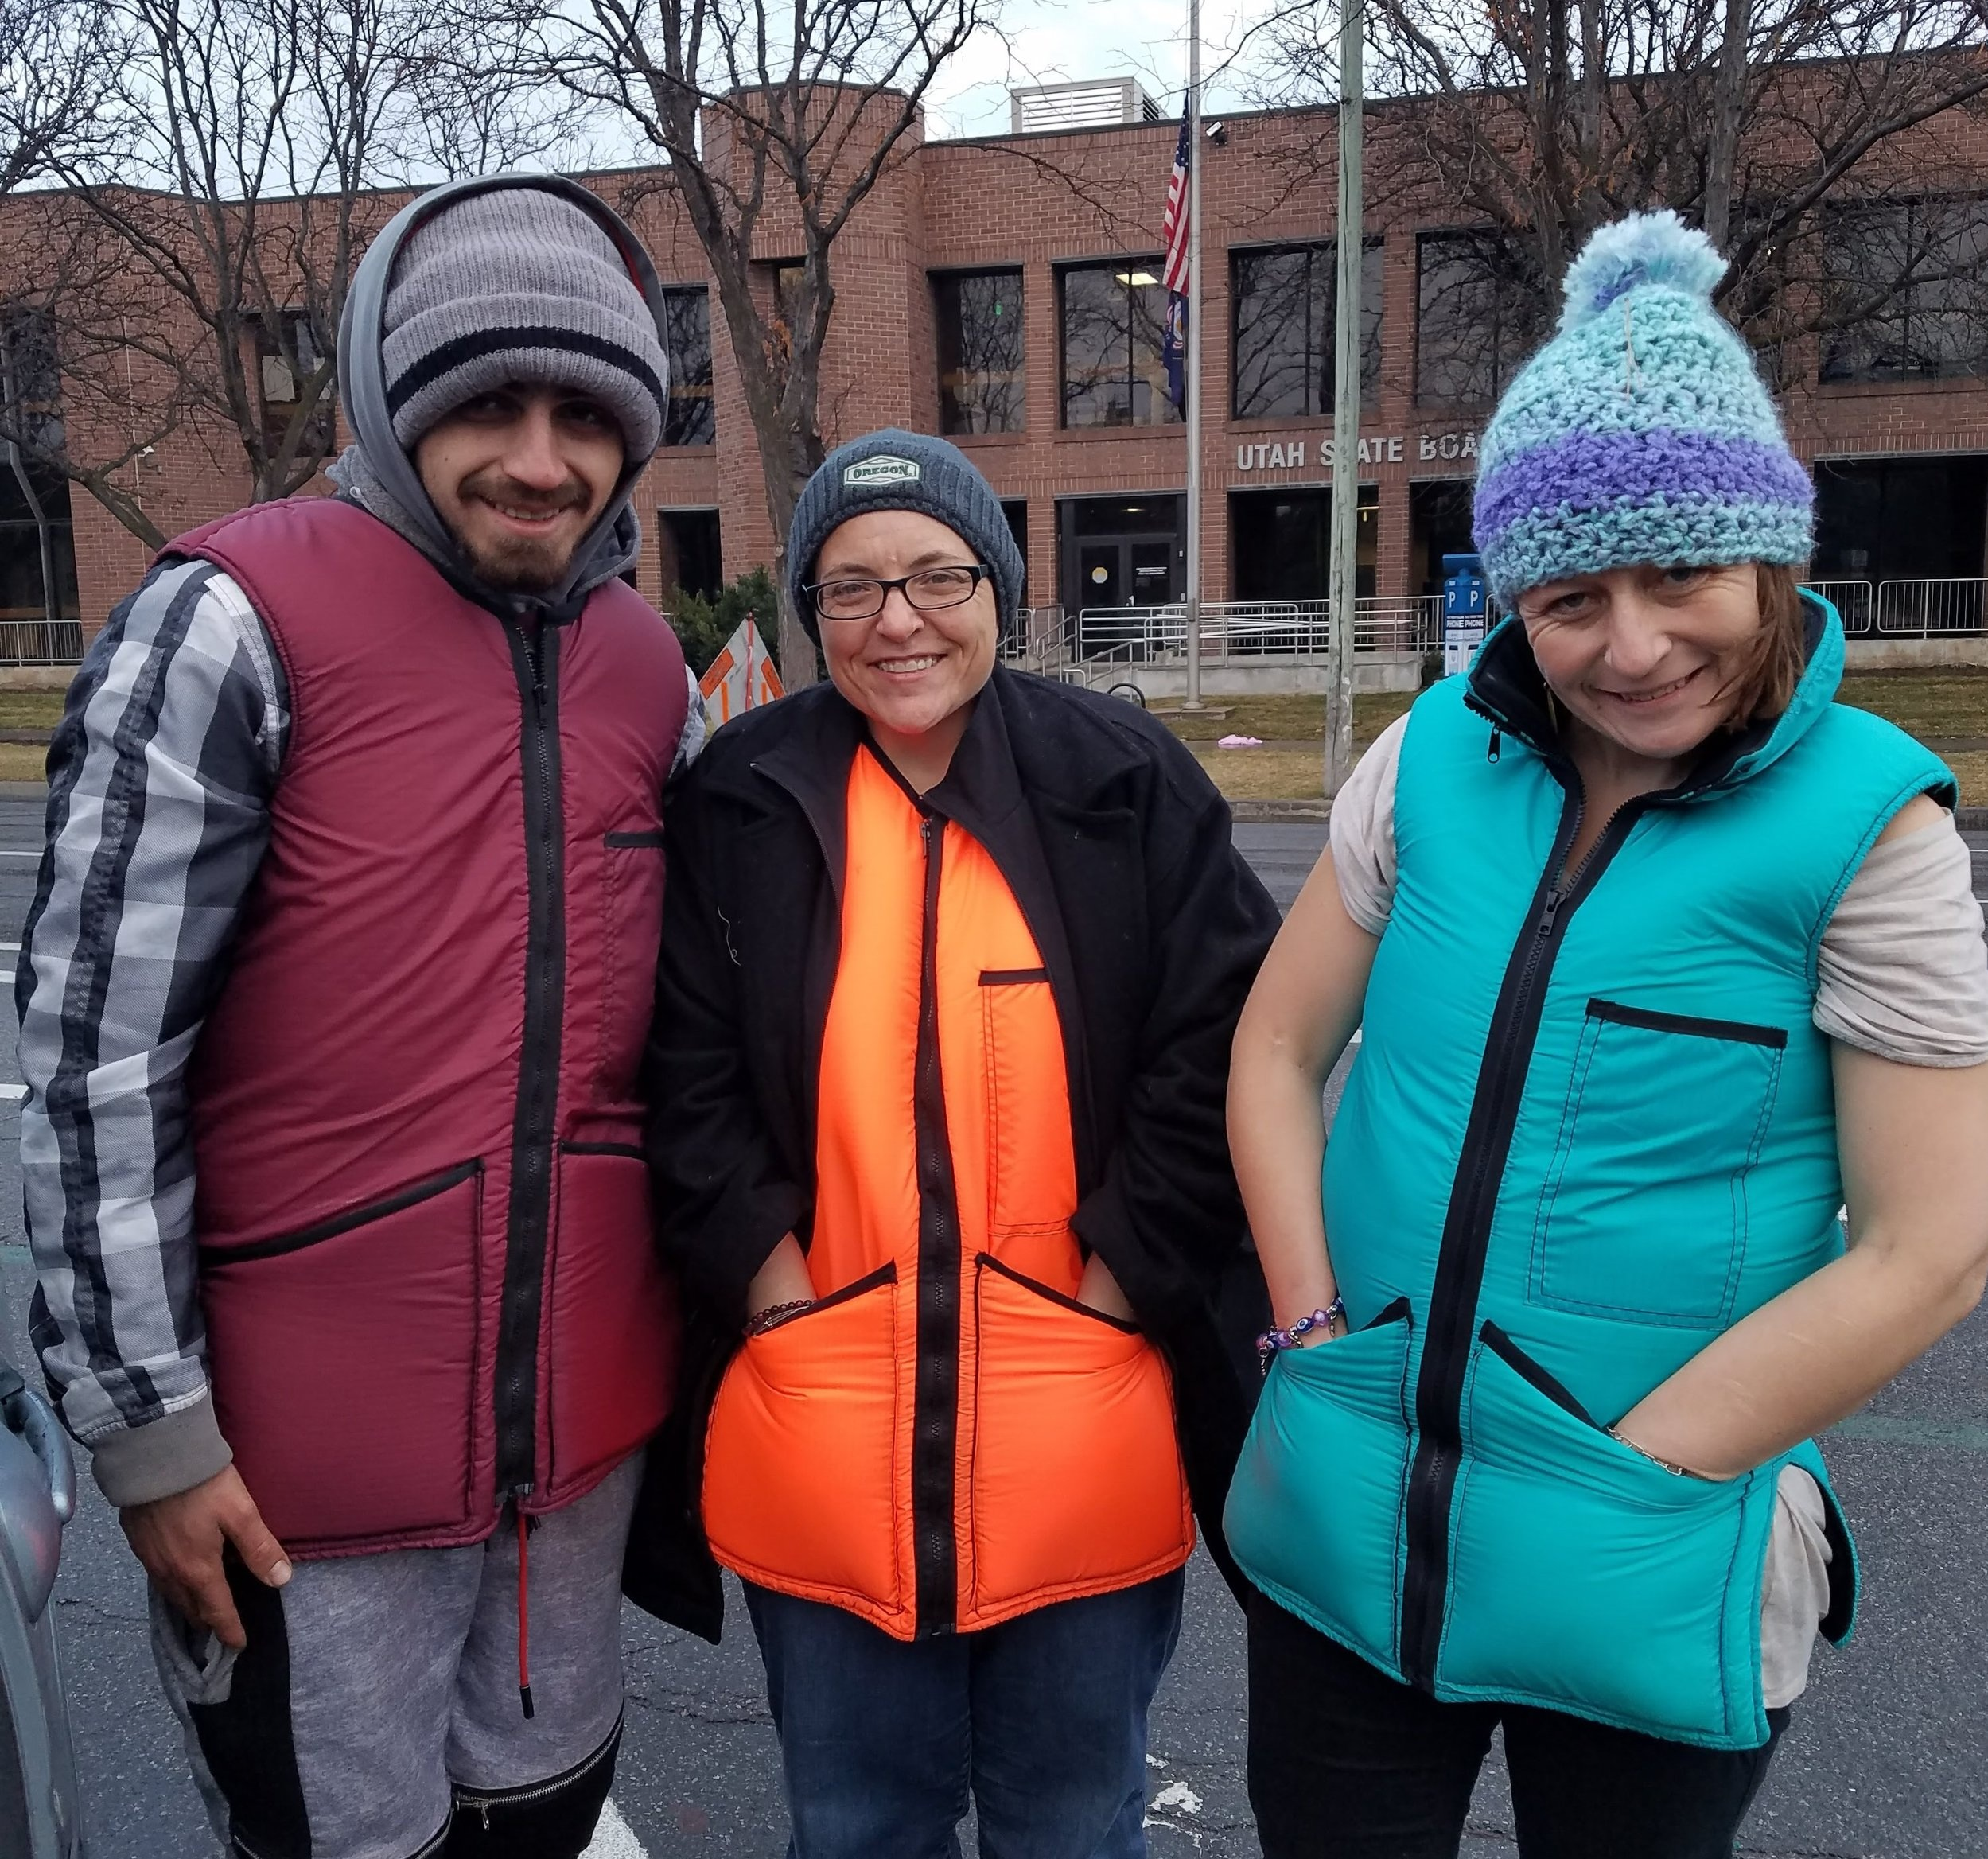 Turtle Shelter  Recipients - Handing out Turtle Shelter Vests to our friends experiencing homelessness.